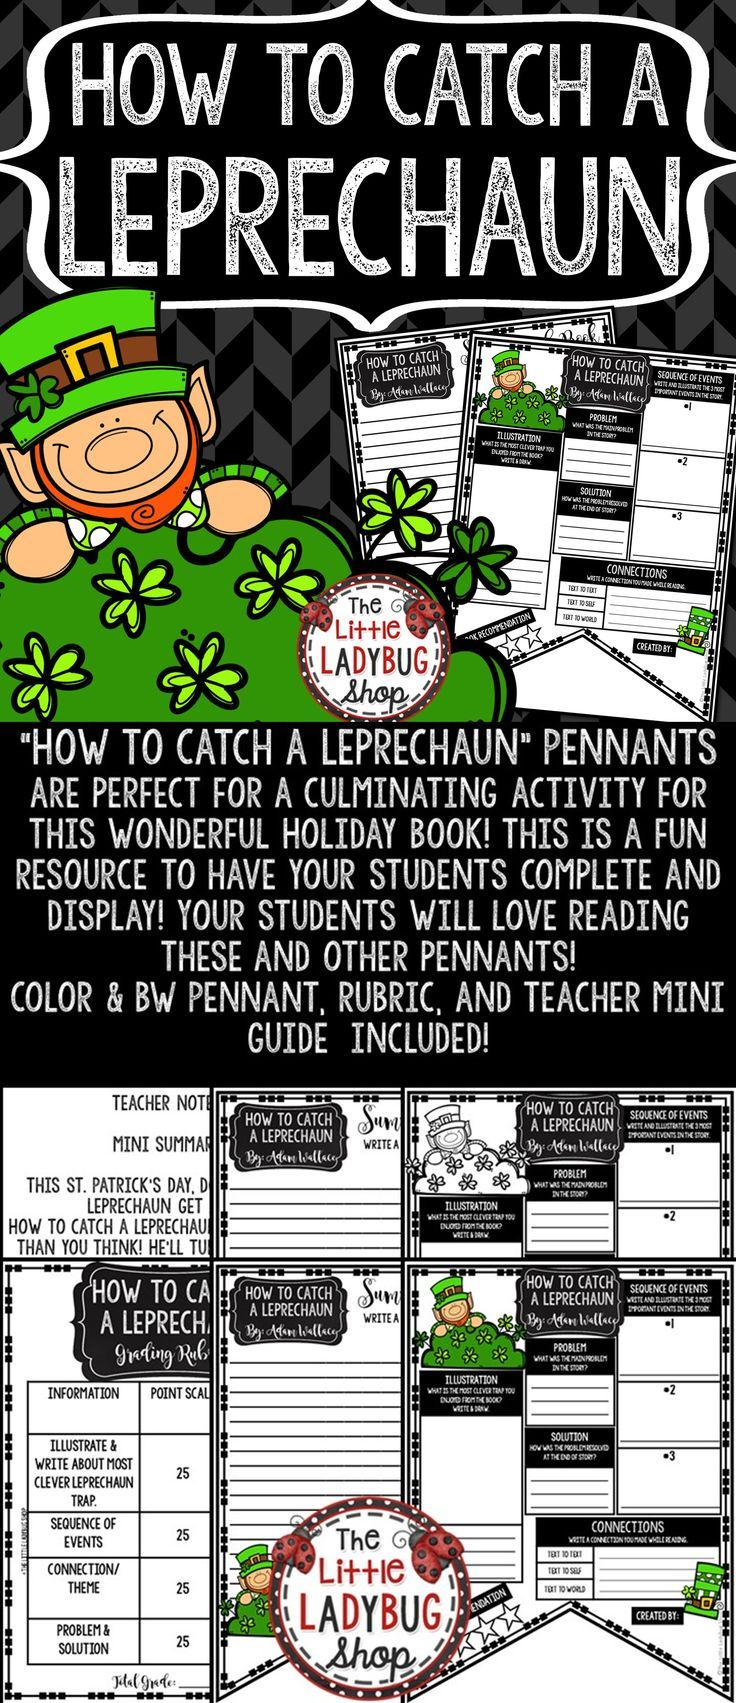 How To Catch A Leprechaun Book Review Template St Patrick S Day Reading All Things Educational Reading Activities Book Review Template Teacher Freebies [ 1703 x 736 Pixel ]